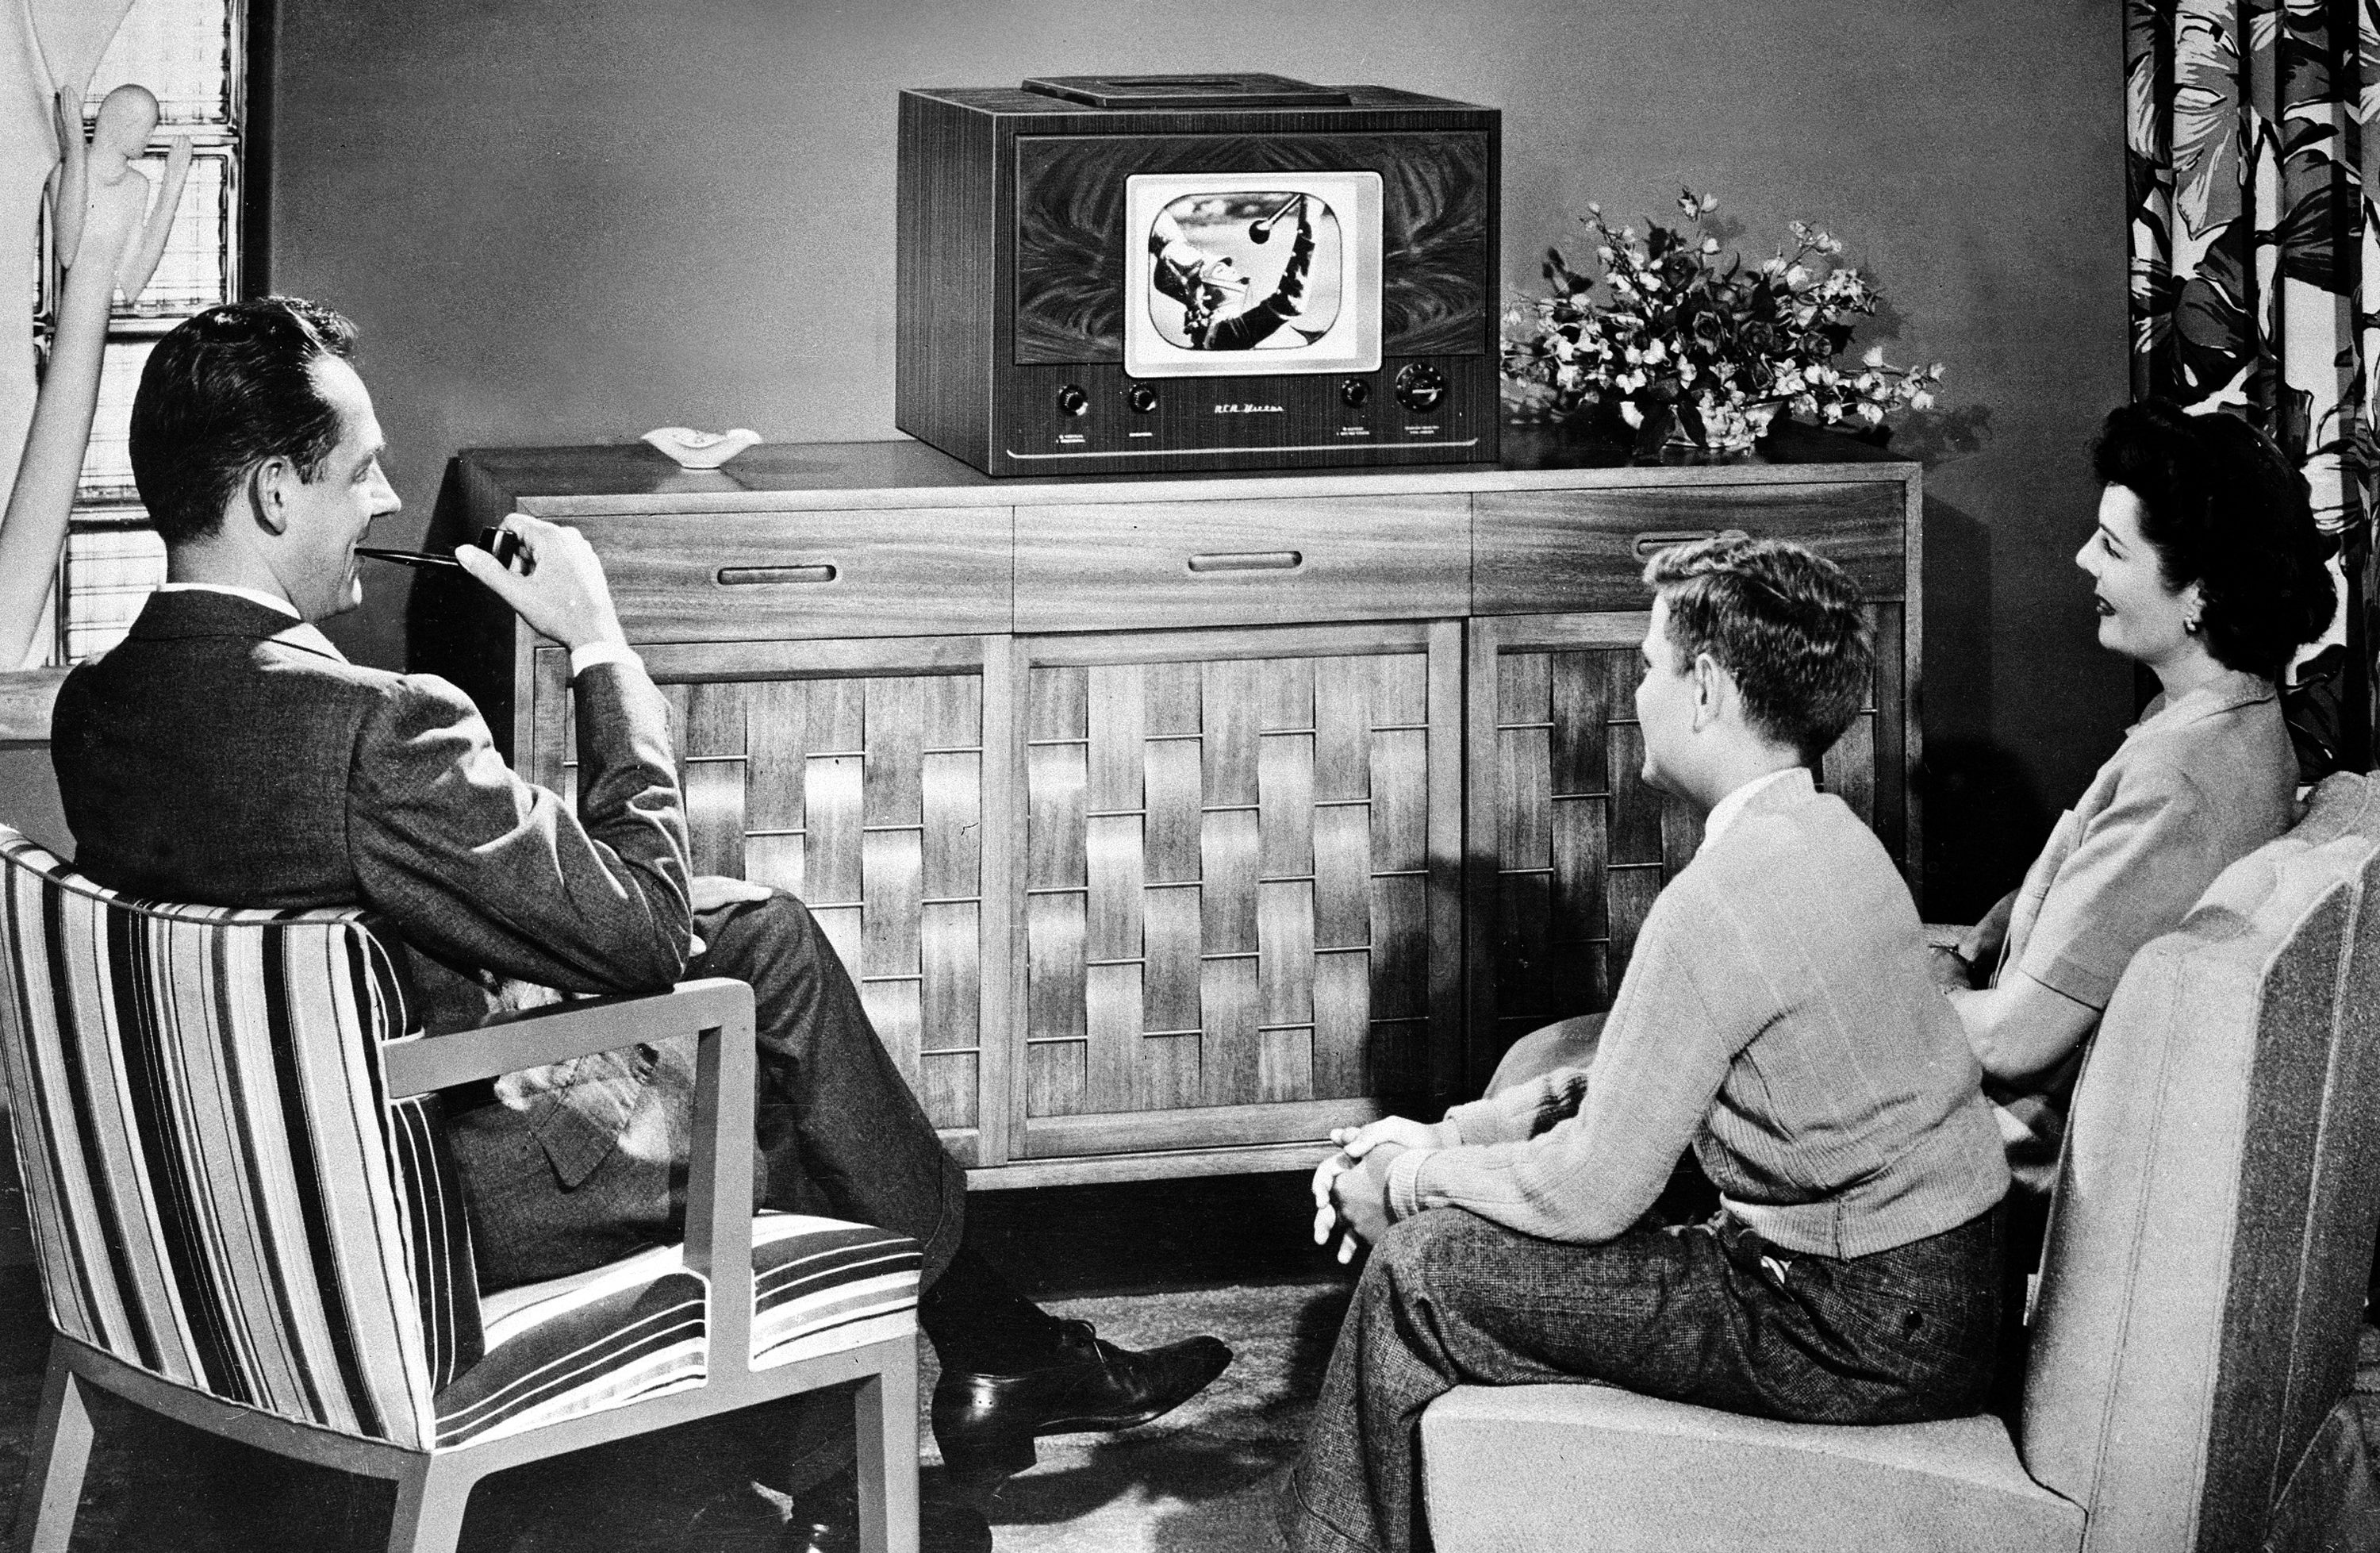 An American family watches a tabletop radio television in 1948.